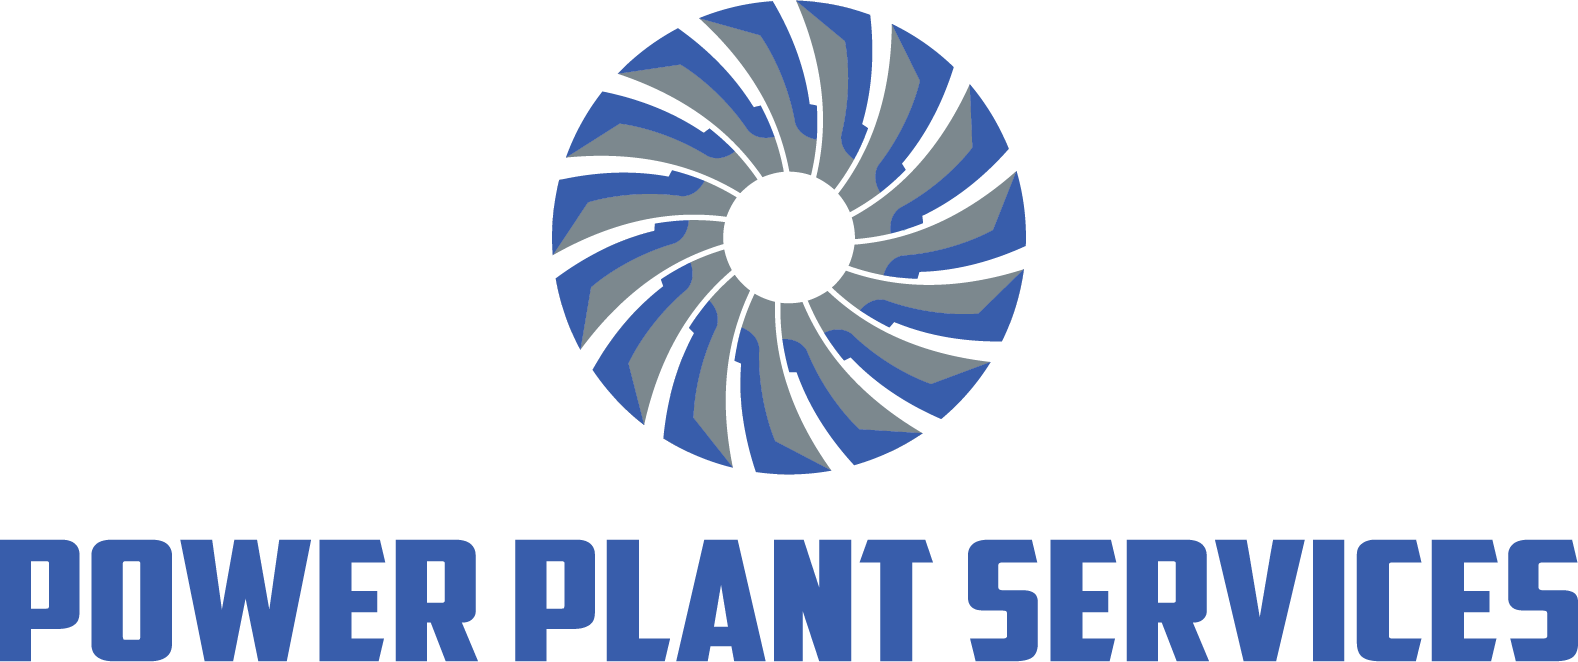 Power Plant Services